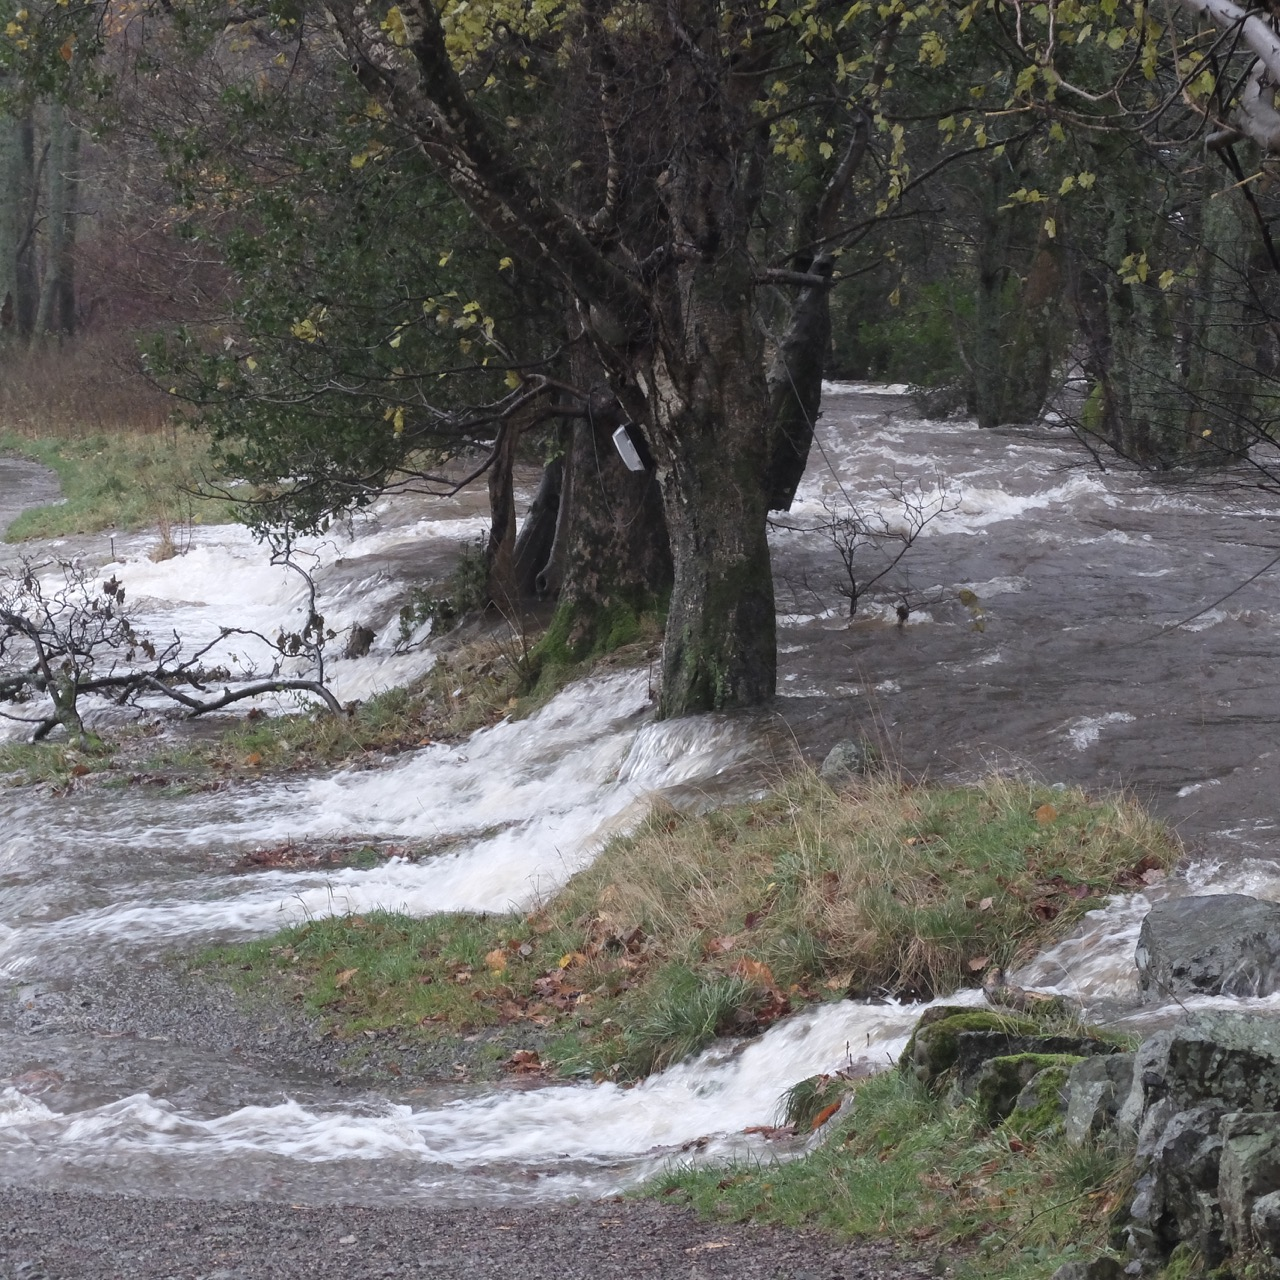 Flood water gushing over from stream passed row of trees onto bank